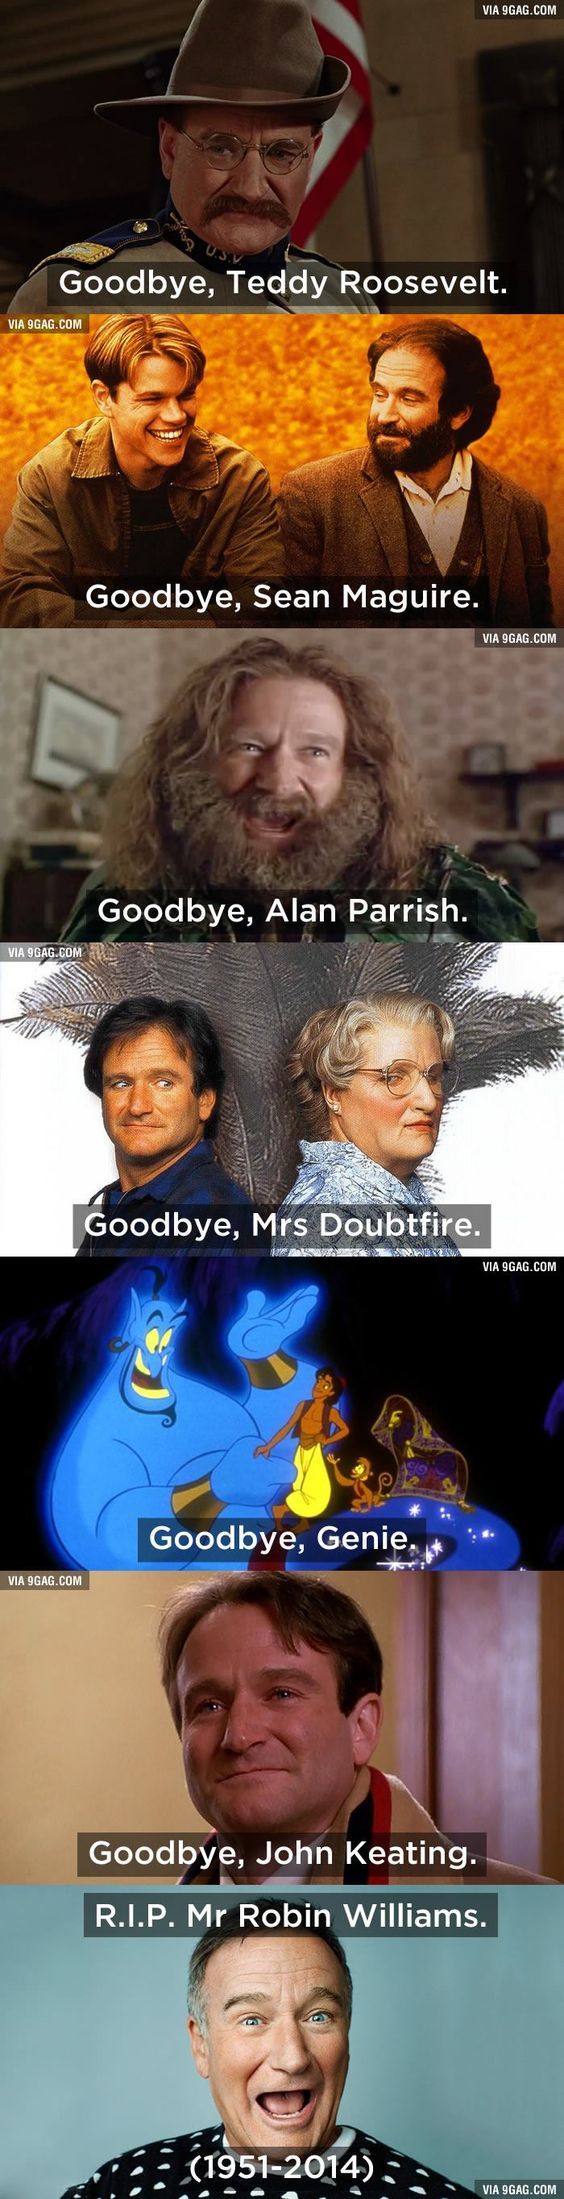 RIP Robin Williams.  Watching a marathon of Patch Adams, Mrs Doubtfire, and Dead Poets Society tonight in his honor :/